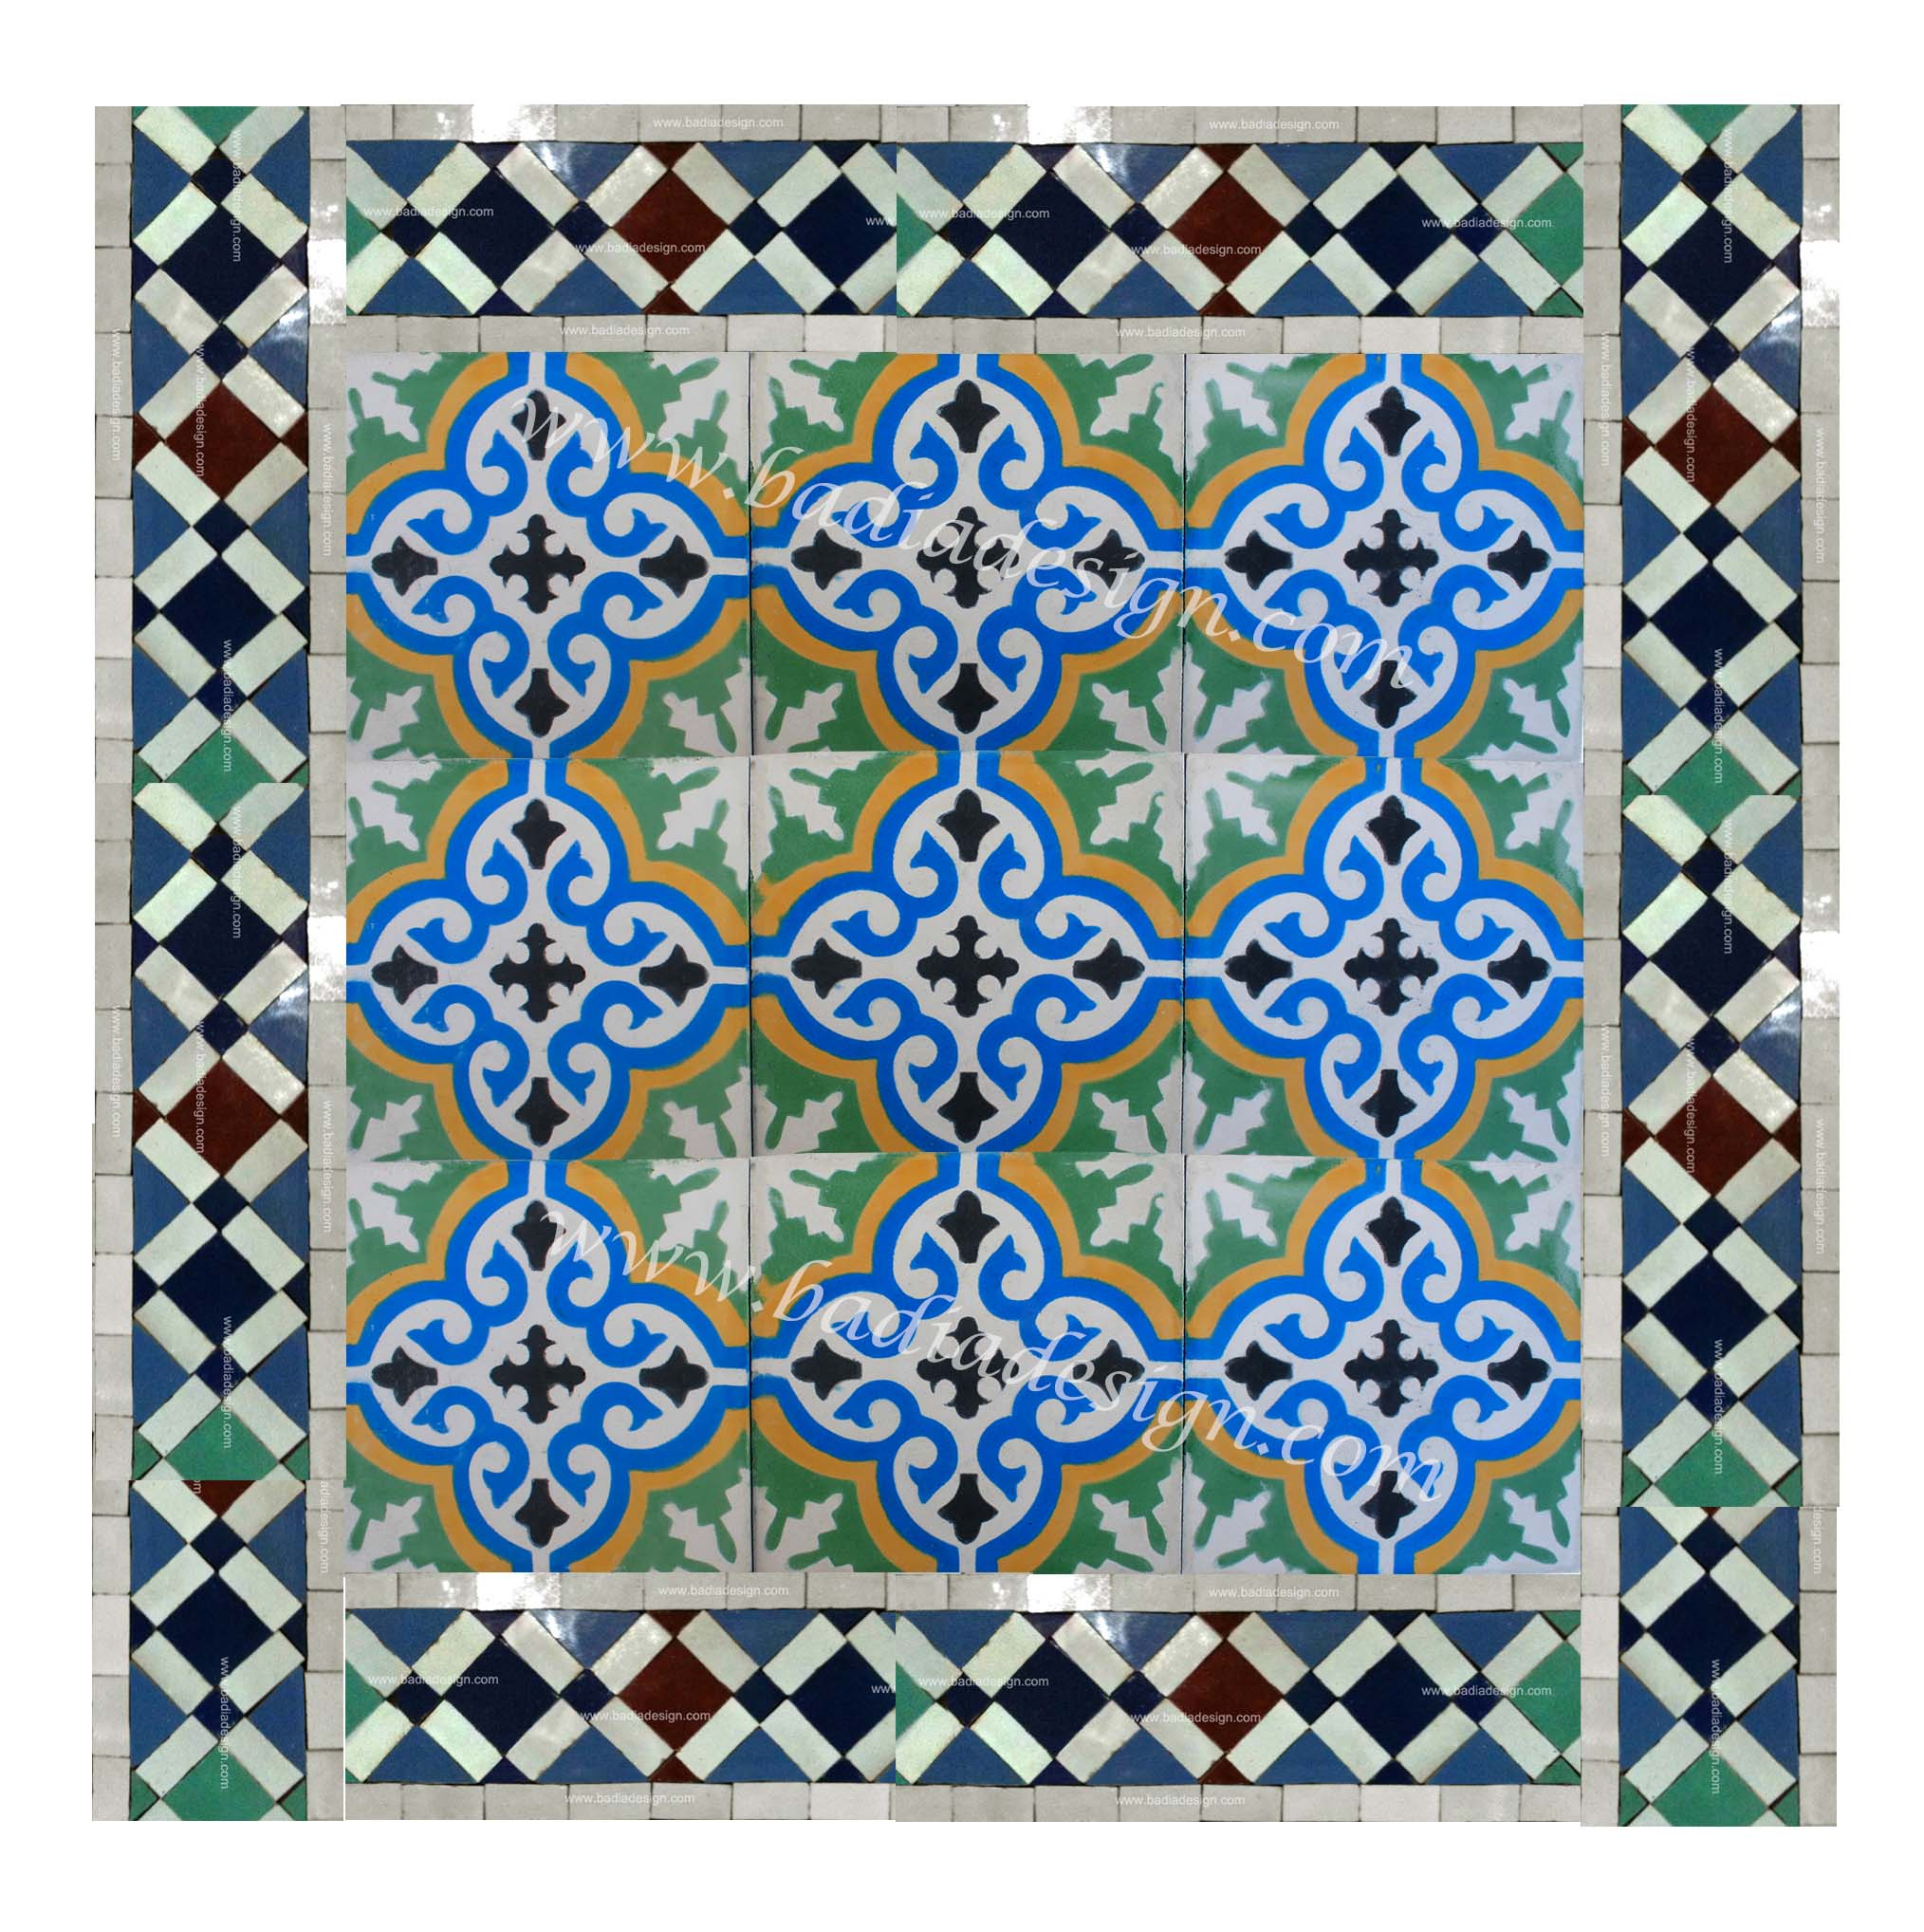 Uncategorized Hand Painted Tiles For Kitchen Backsplash hand painted tiles palm tree tile mural ceramic murals moroccan floor example cement mosaic donnau0027s blog kitchen backsplash